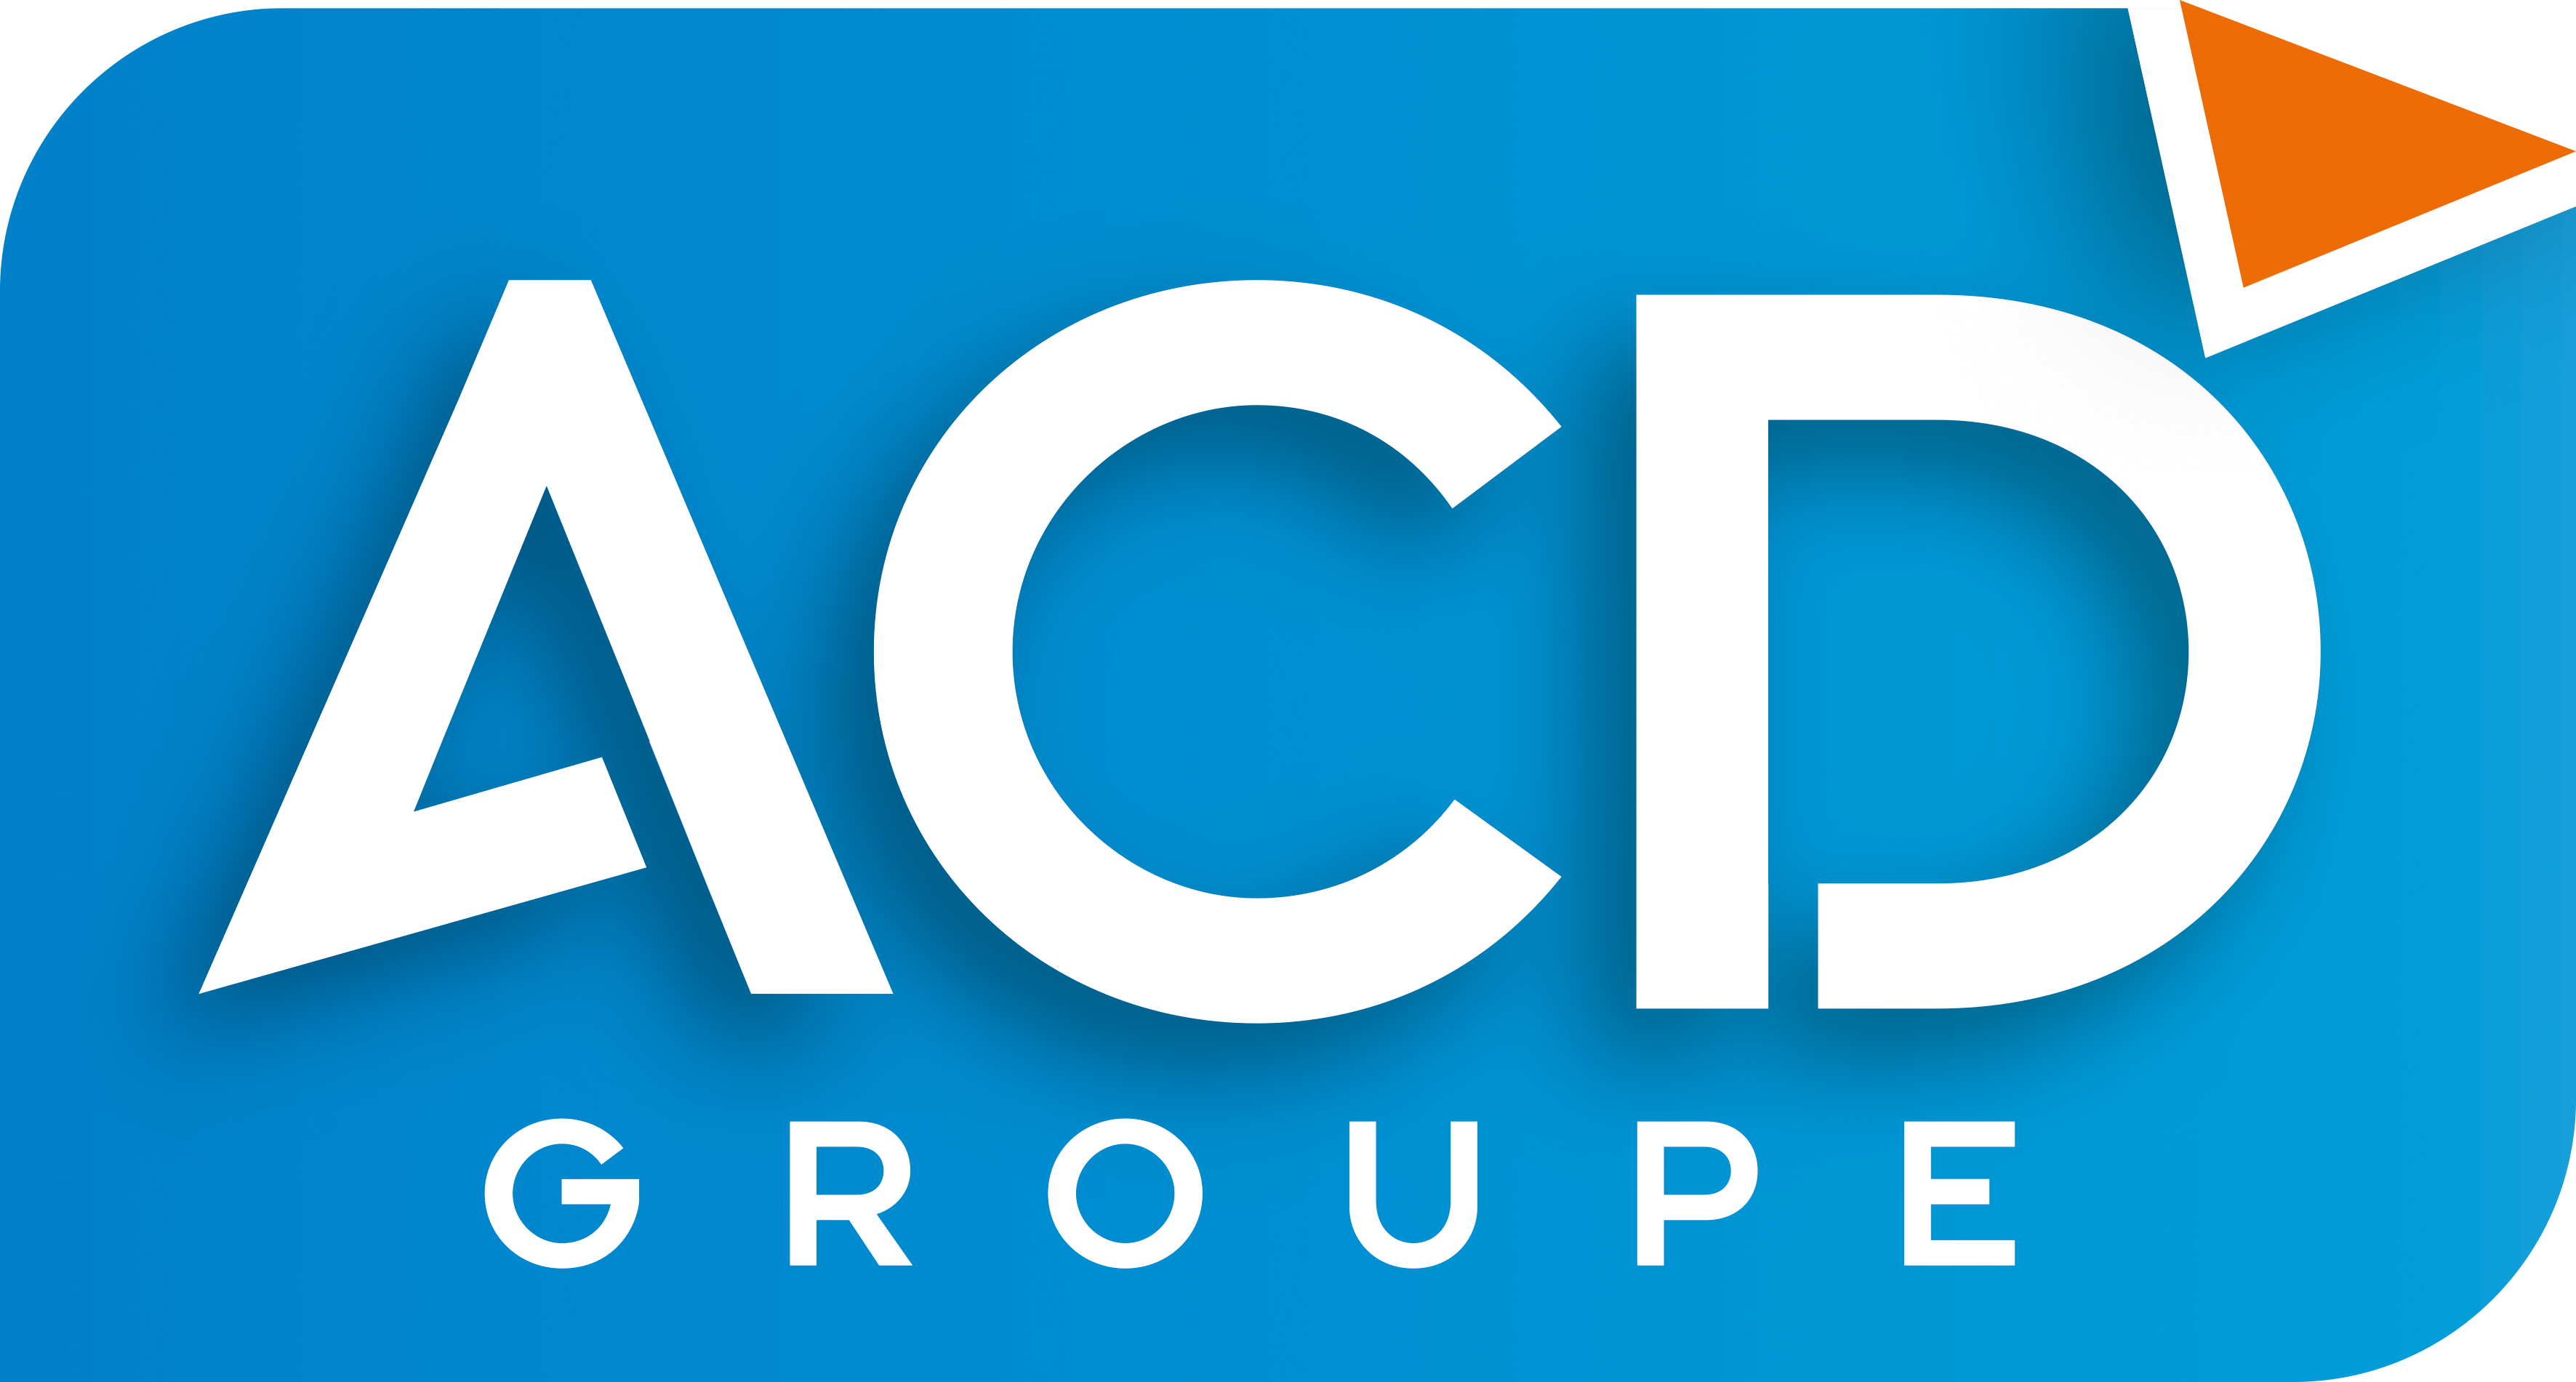 Acd%20groupe